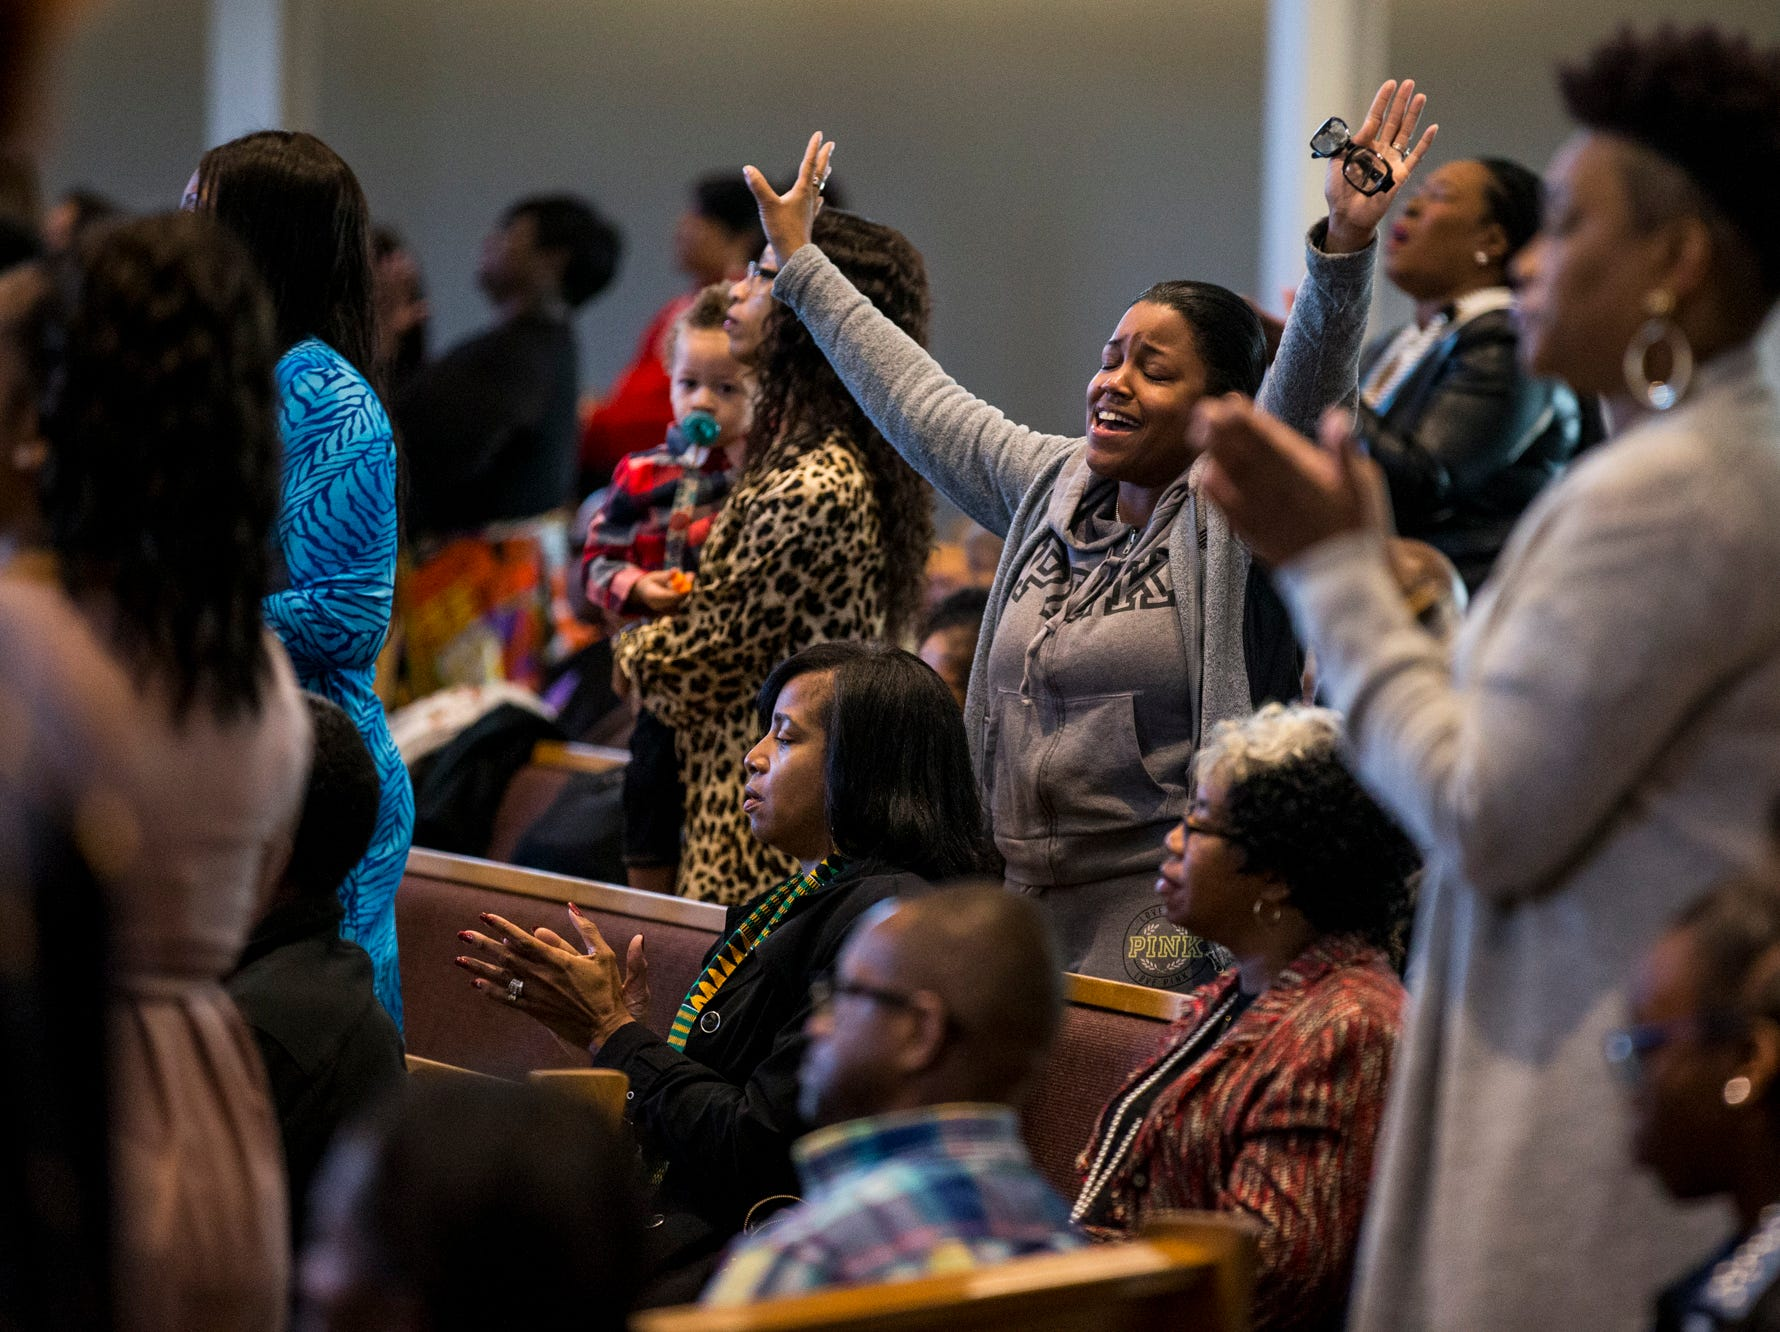 A congregant raises her arms during the 7:30 a.m. service on Feb. 24, 2019, at Pilgrim Rest Baptist Church in Phoenix. Pastor Terry Mackey was appointed to replace the late Bishop Alexis Thomas.